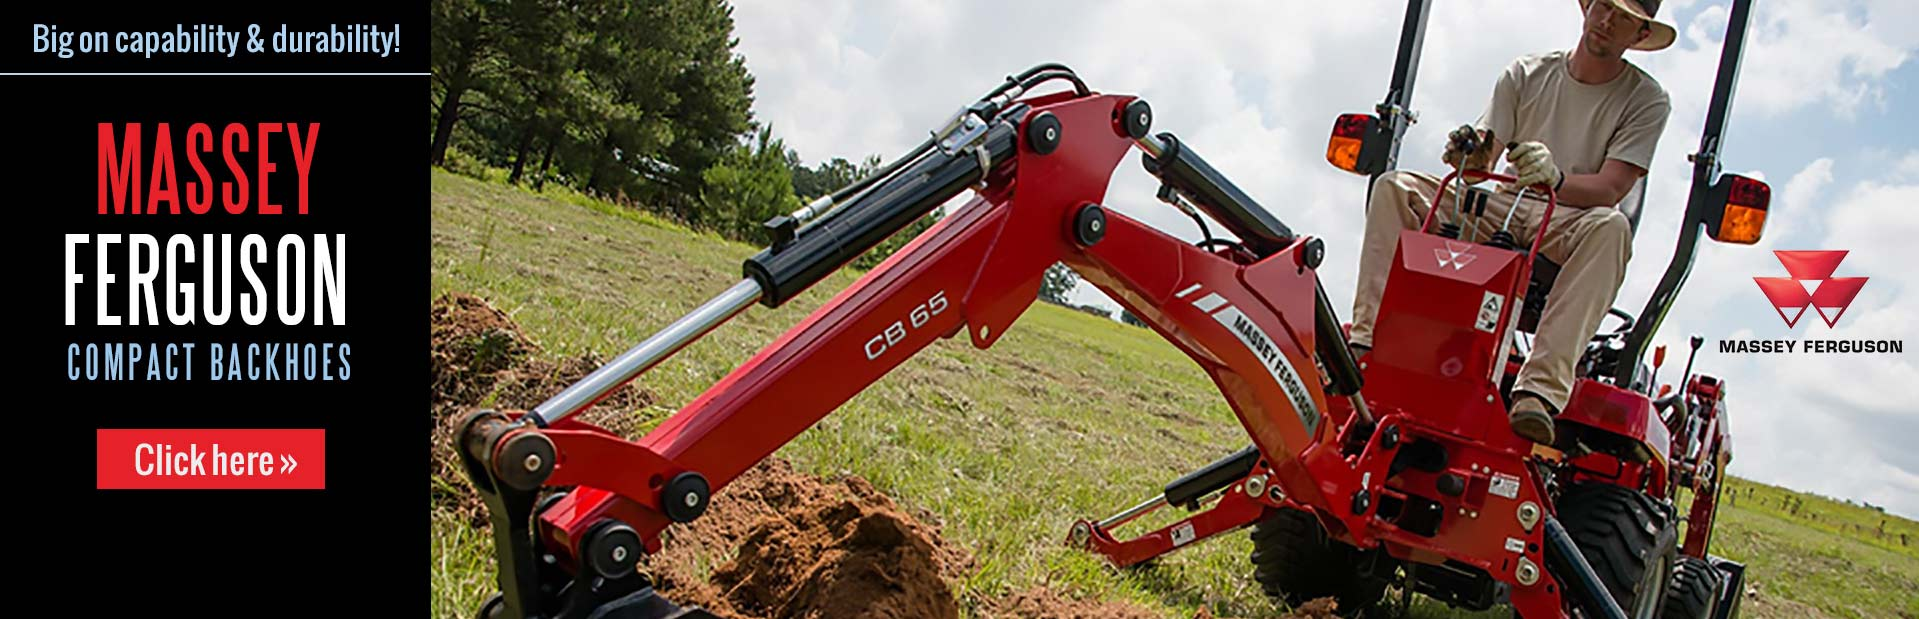 Massey Ferguson compact backhoes are big on capability and durability. Click here to view our select